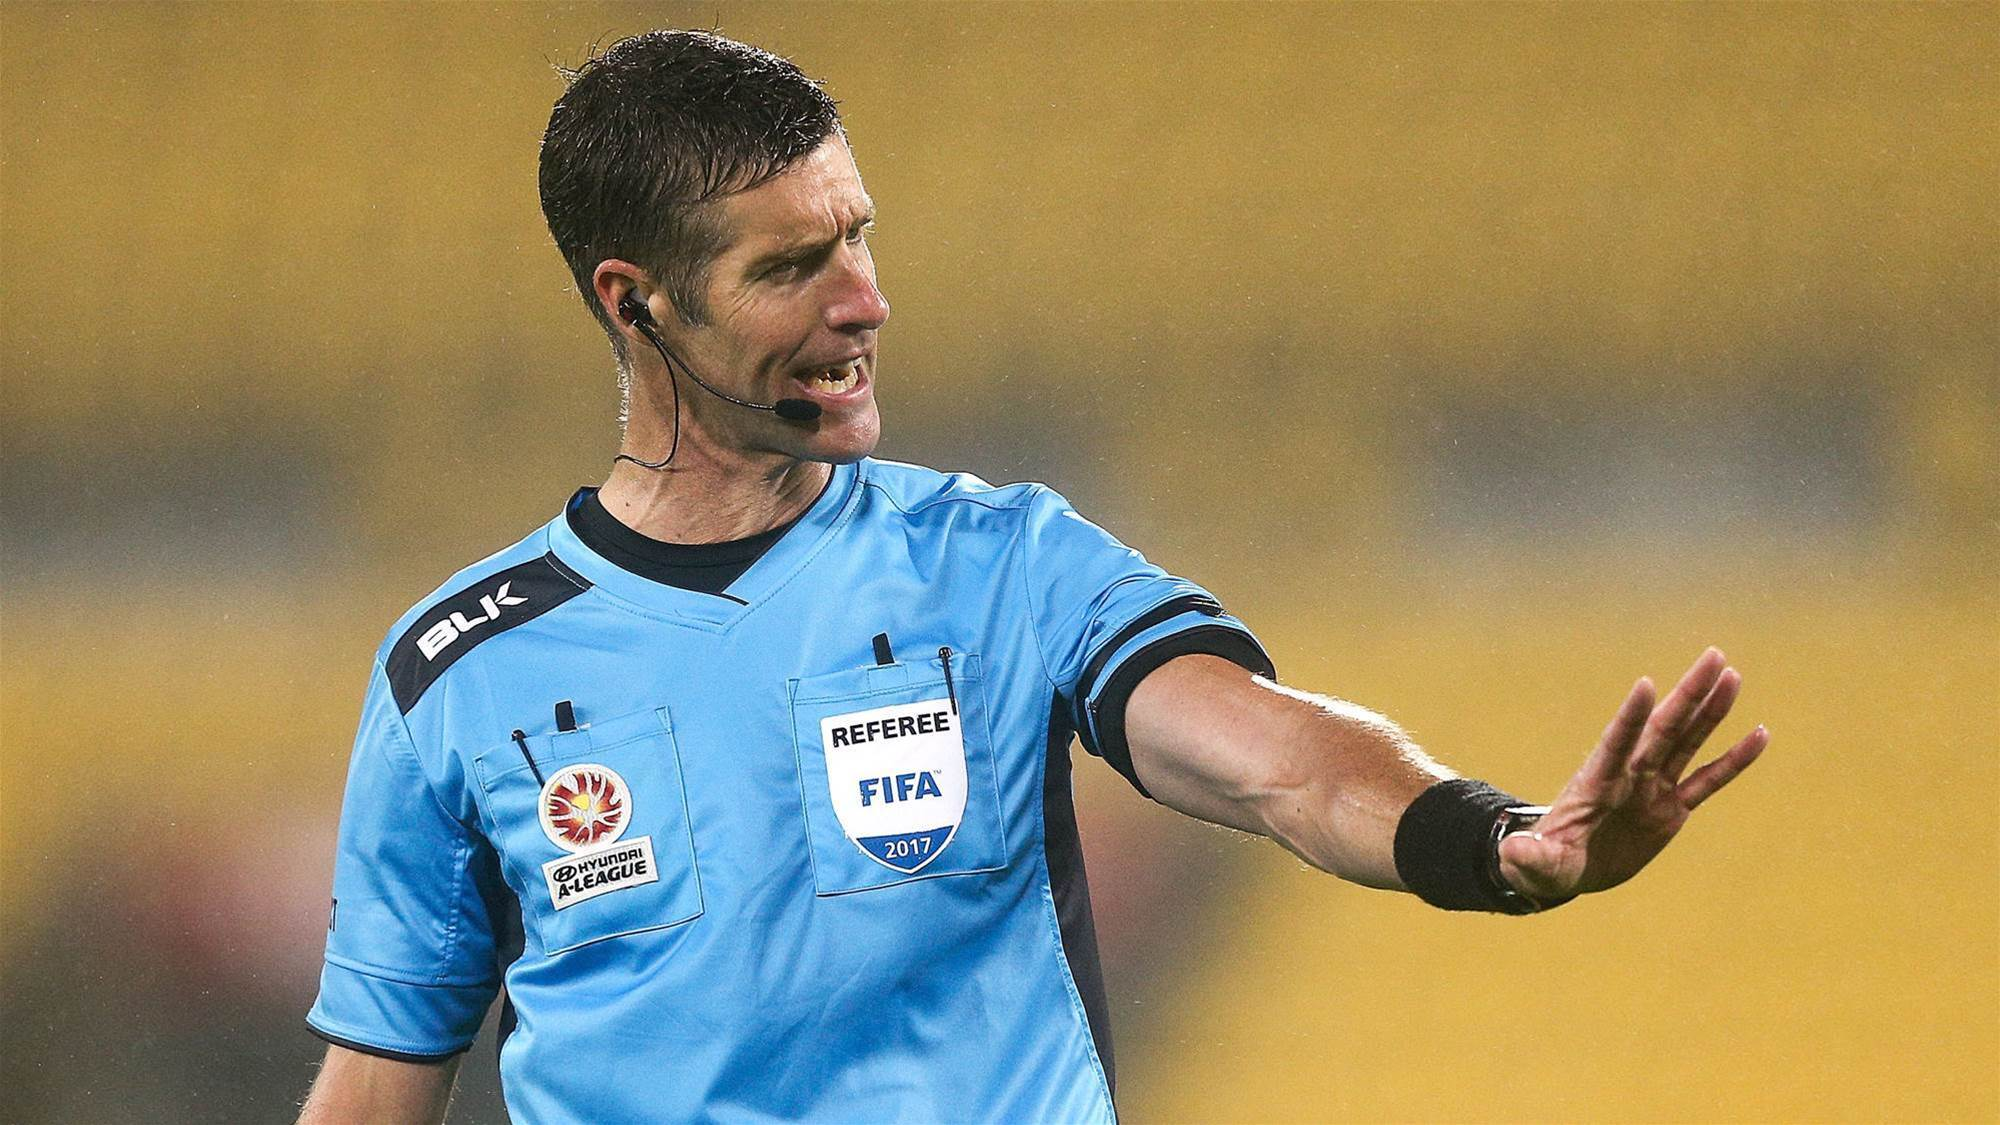 A-League ref ready for his World Cup moment